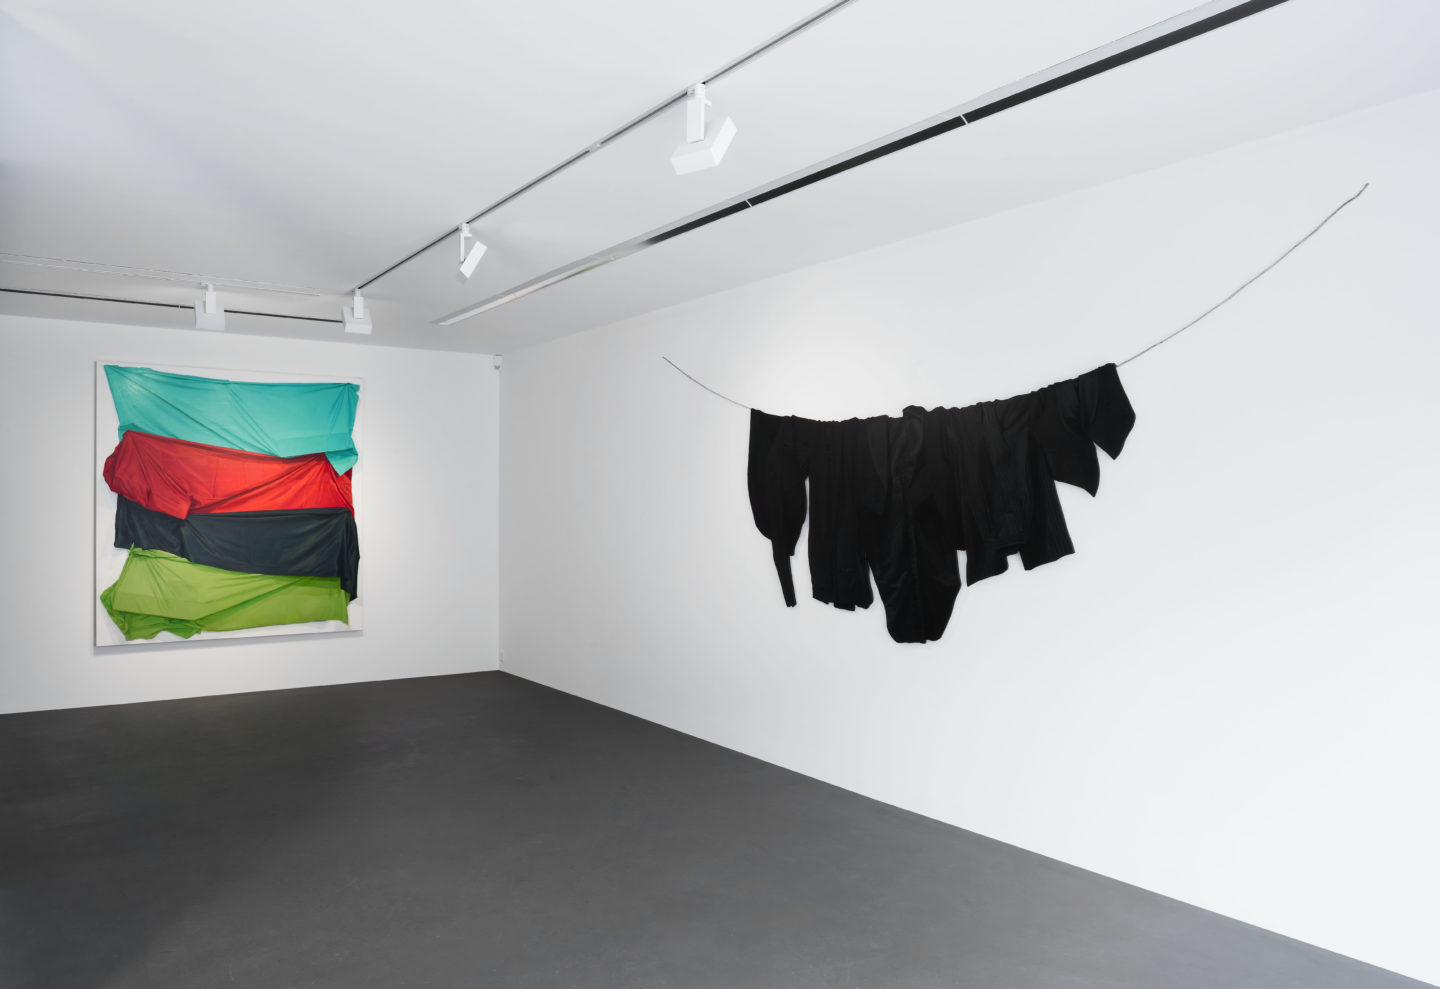 Exhibition View Stephen Posen «Threads: Paintings from the 1960s and '70s» at Vito Schnabel Gallery, St. Moritz / Photos: Roland Tännler / Courtesy the artist and Vito Schnabel Gallery